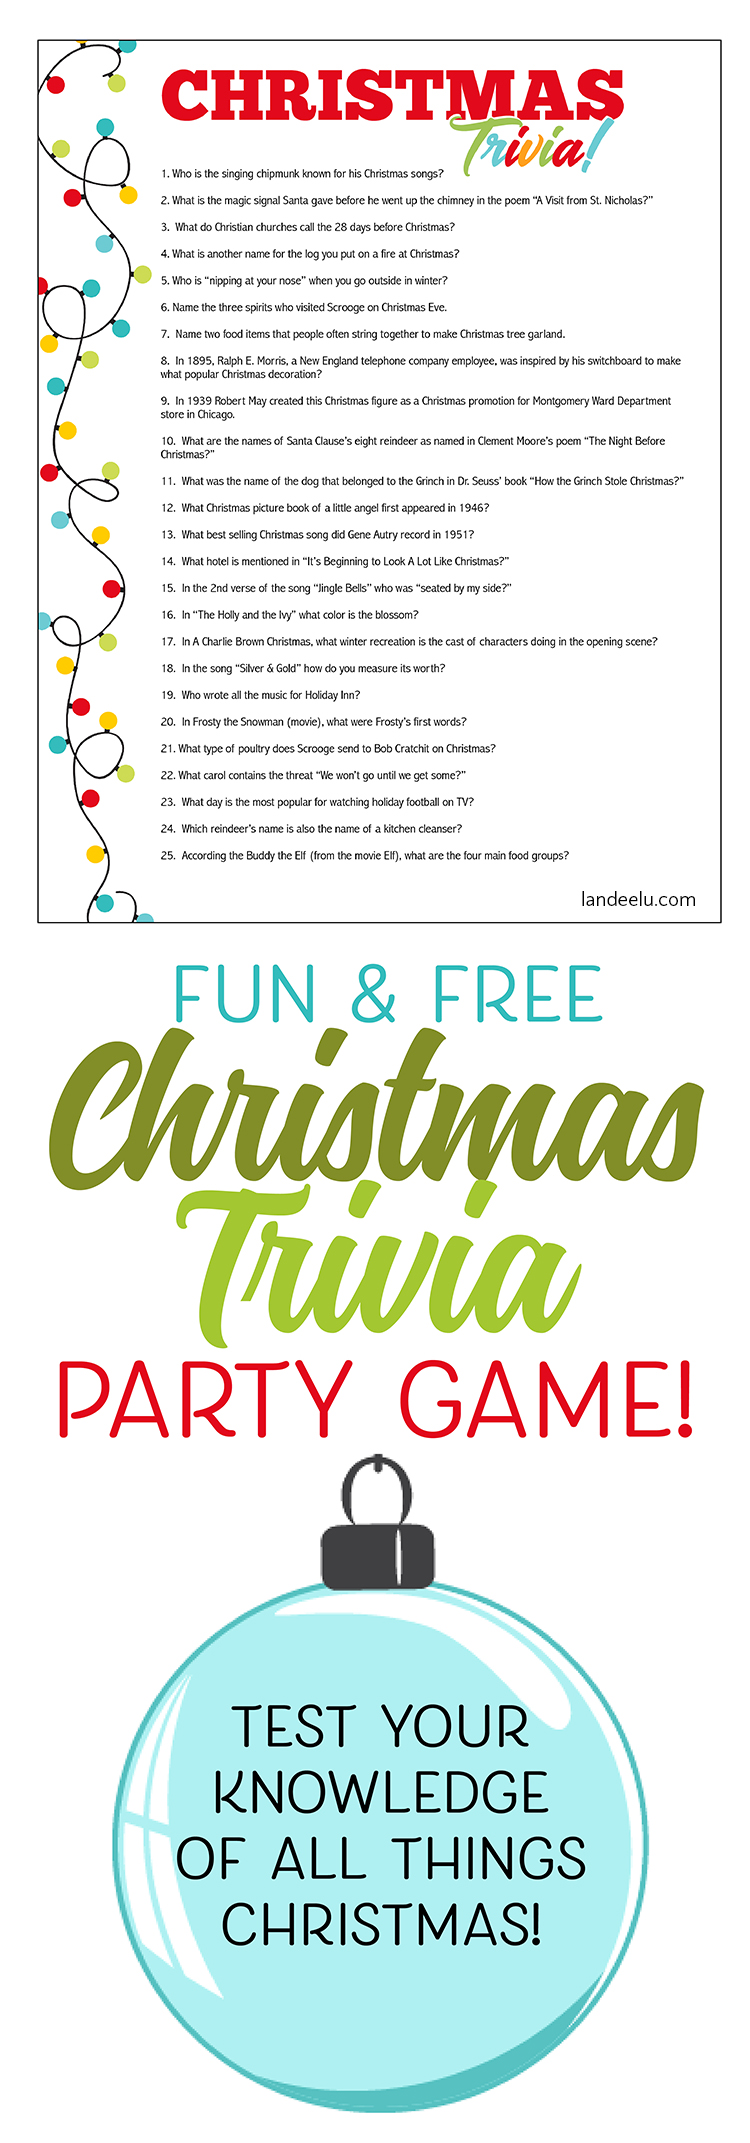 Free download! Easy to print and pass out to party guests to see who knows the most about Christmas!